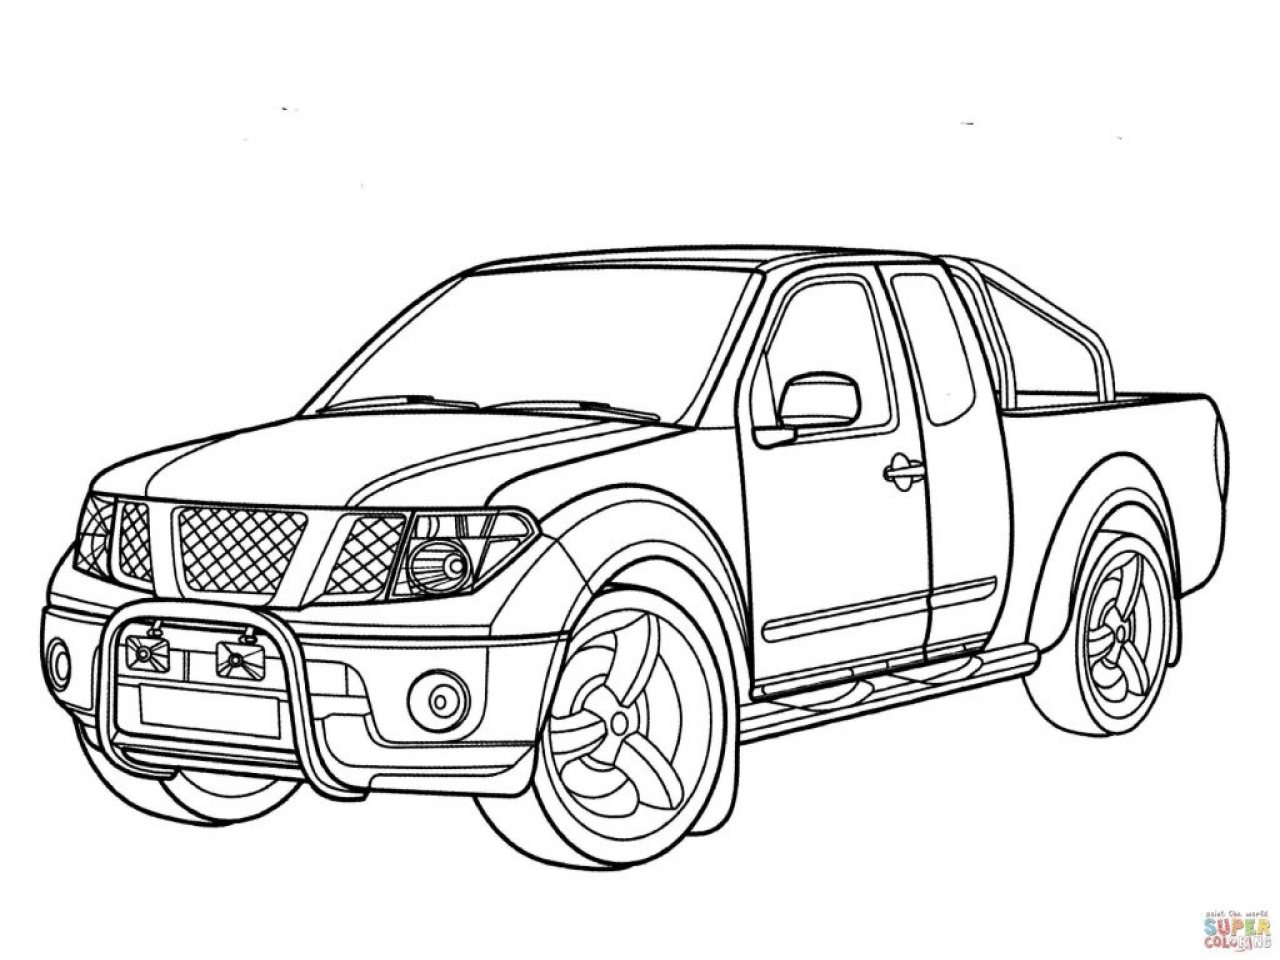 off road truck coloring pages pickup truck drawing at getdrawings free download truck off pages coloring road